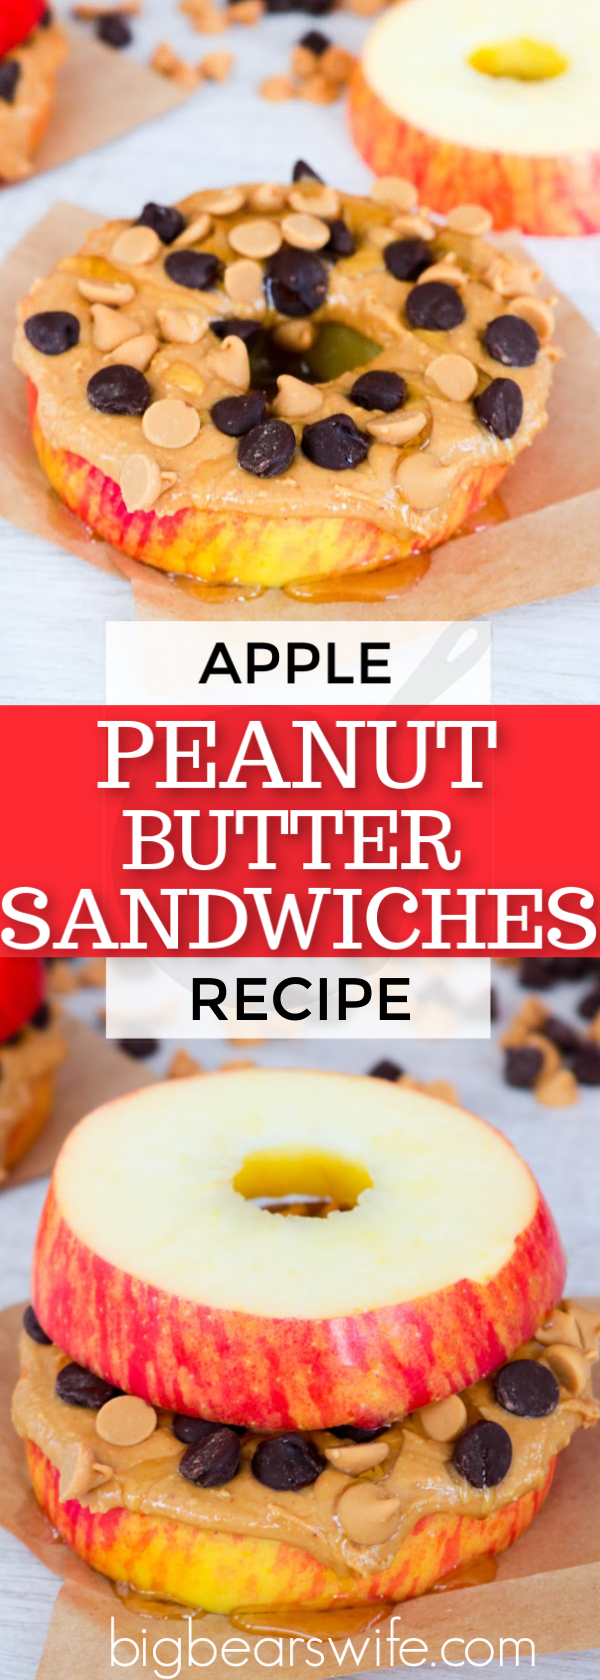 """These Apple Peanut Butter Sandwiches are fun, healthy and easy to make! Eat these apple """"sandwiches"""" with just peanut butter or add in all sorts of treats like chocolate chips, peanut butter chips, honey, oats, or raisins. #peanutbutter #applesandwich #HealthySnack"""